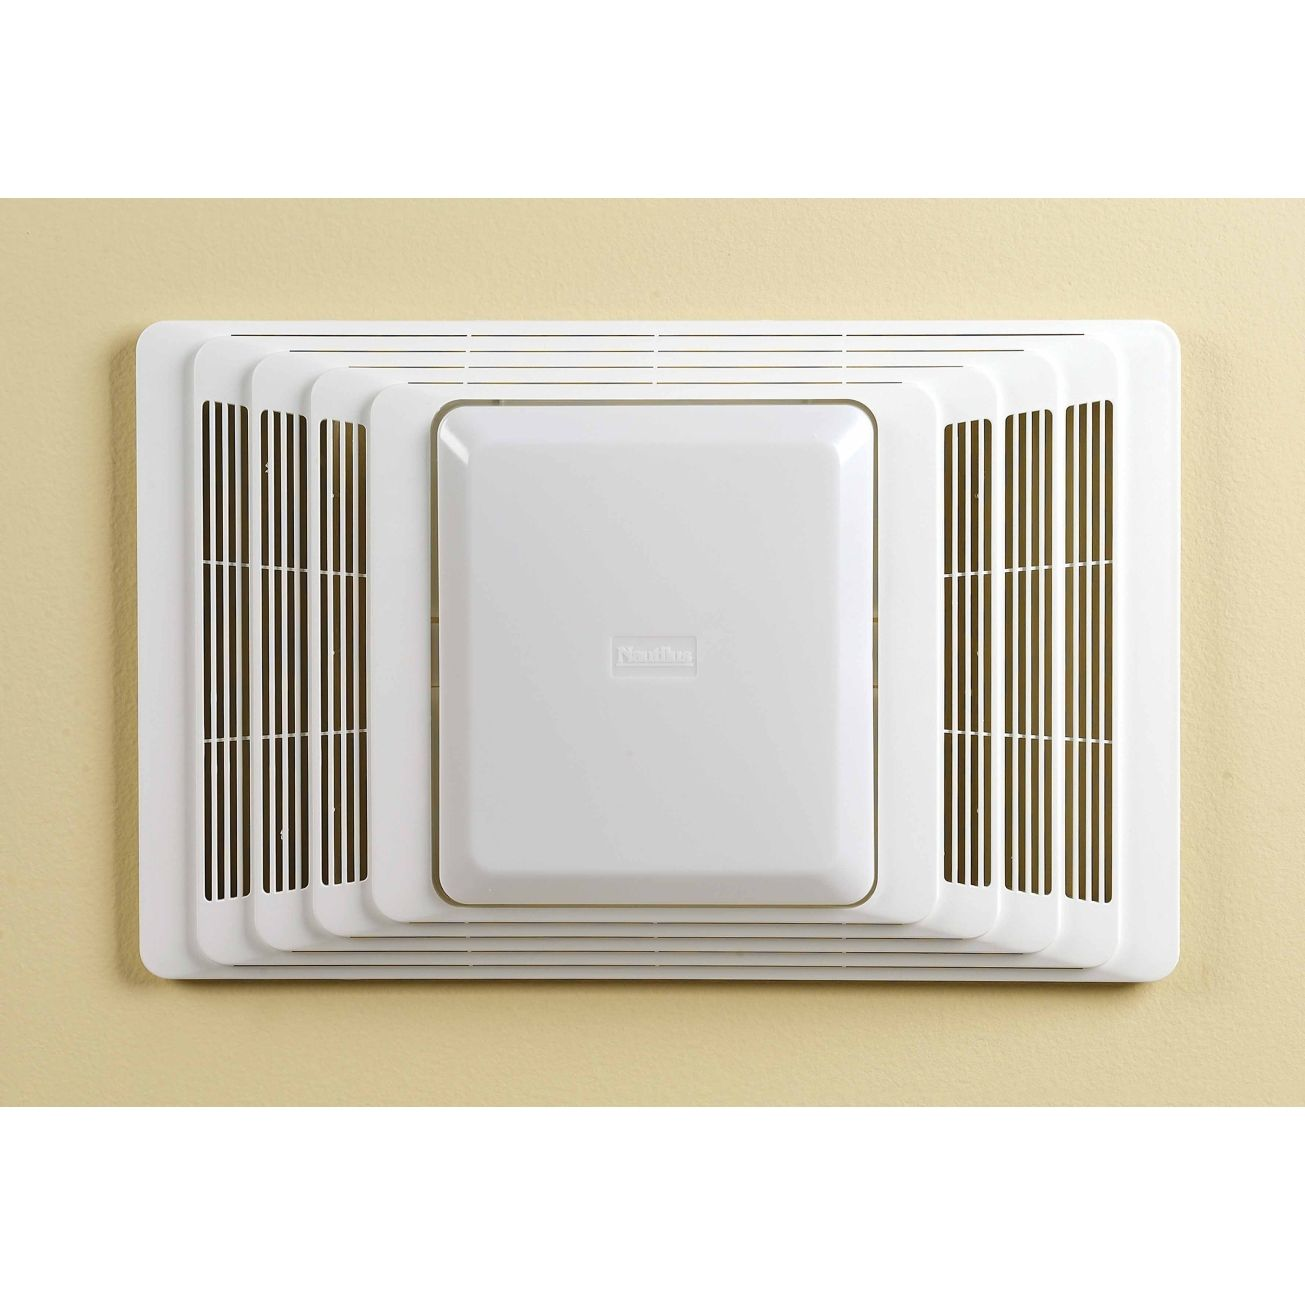 Broan 70cfm deluxe bathroom heater fan light 655 bath fans broan ventilation fanheat combination with lights ceiling 16 34 in d x 7 78 in h x 10 58 in65 bath fans heaters aloadofball Image collections